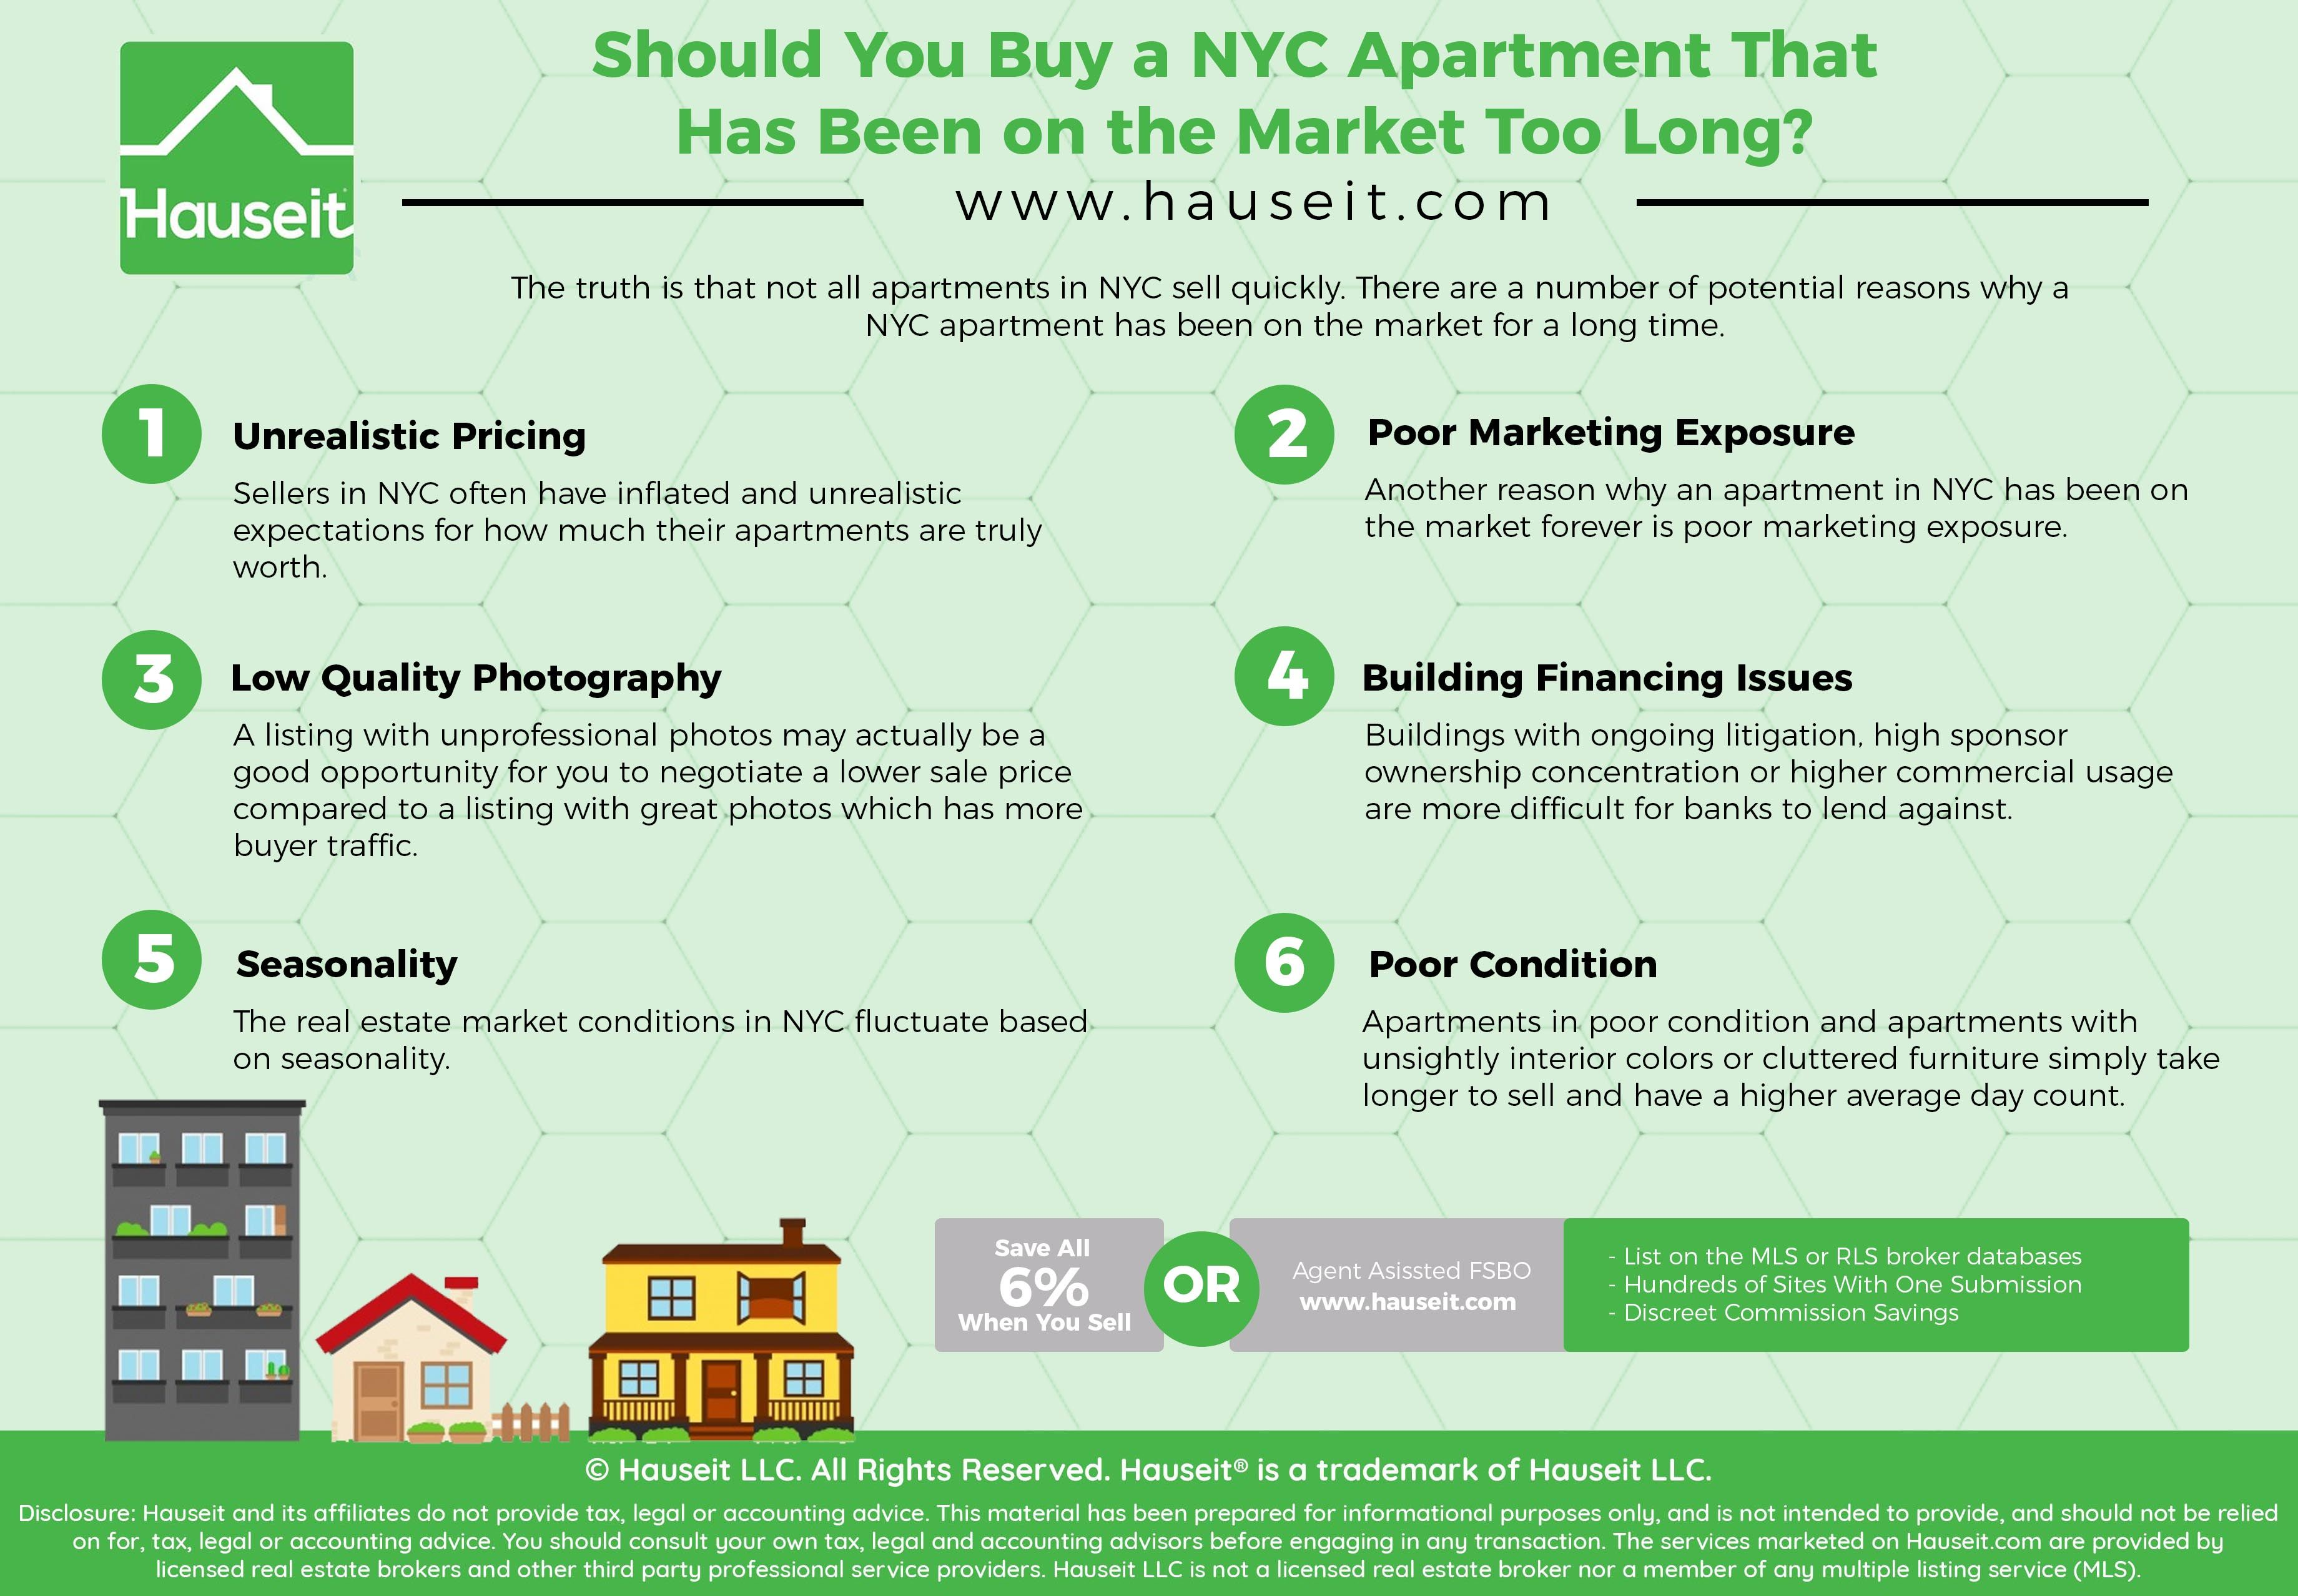 Should You Buy A Nyc Apartment That Has Been On The Market Too